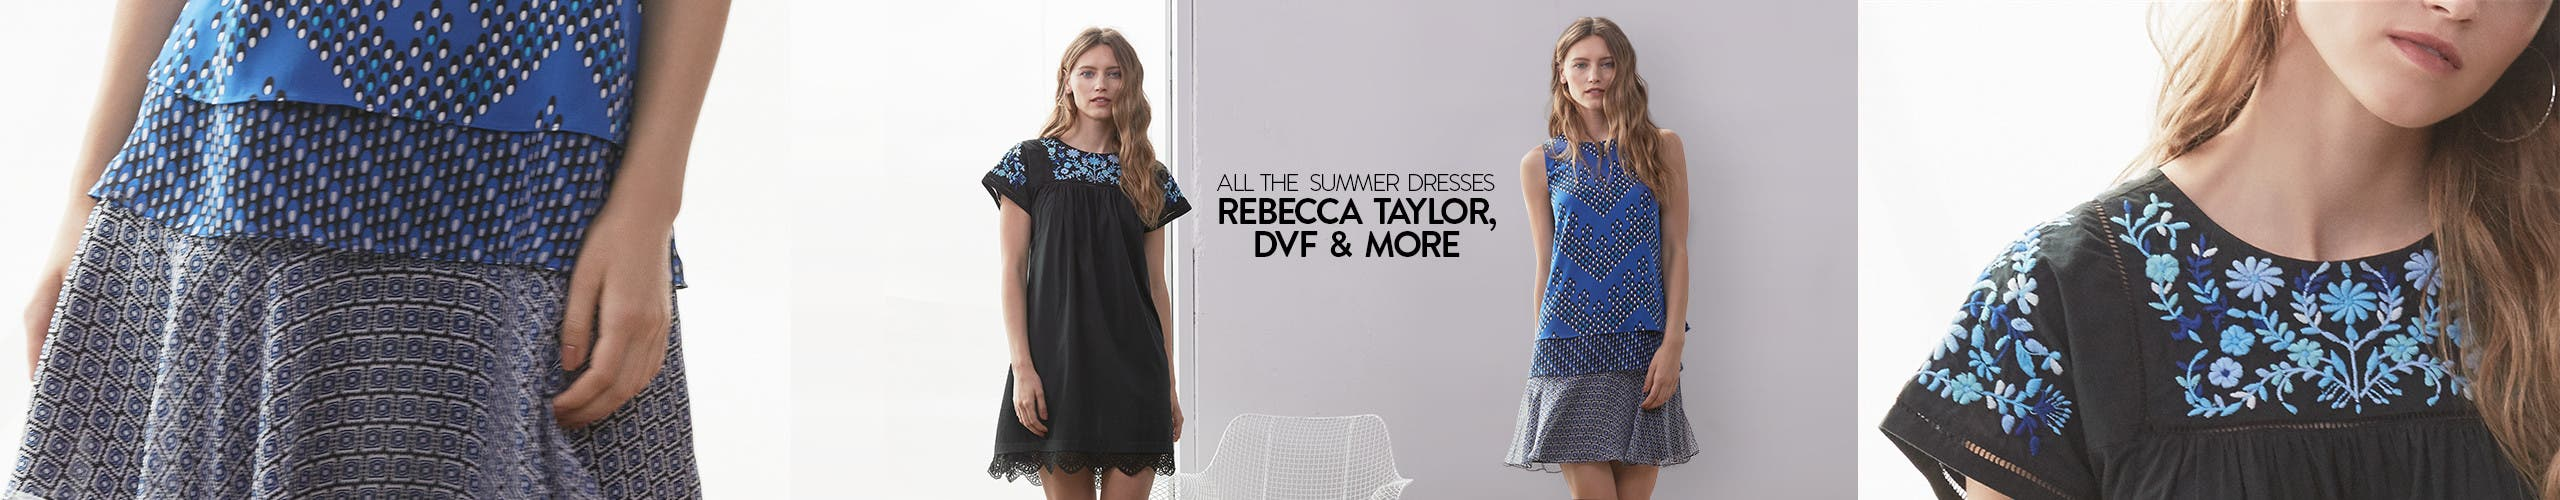 All The Summer Dresses: Rebecca Taylor, DVF & More